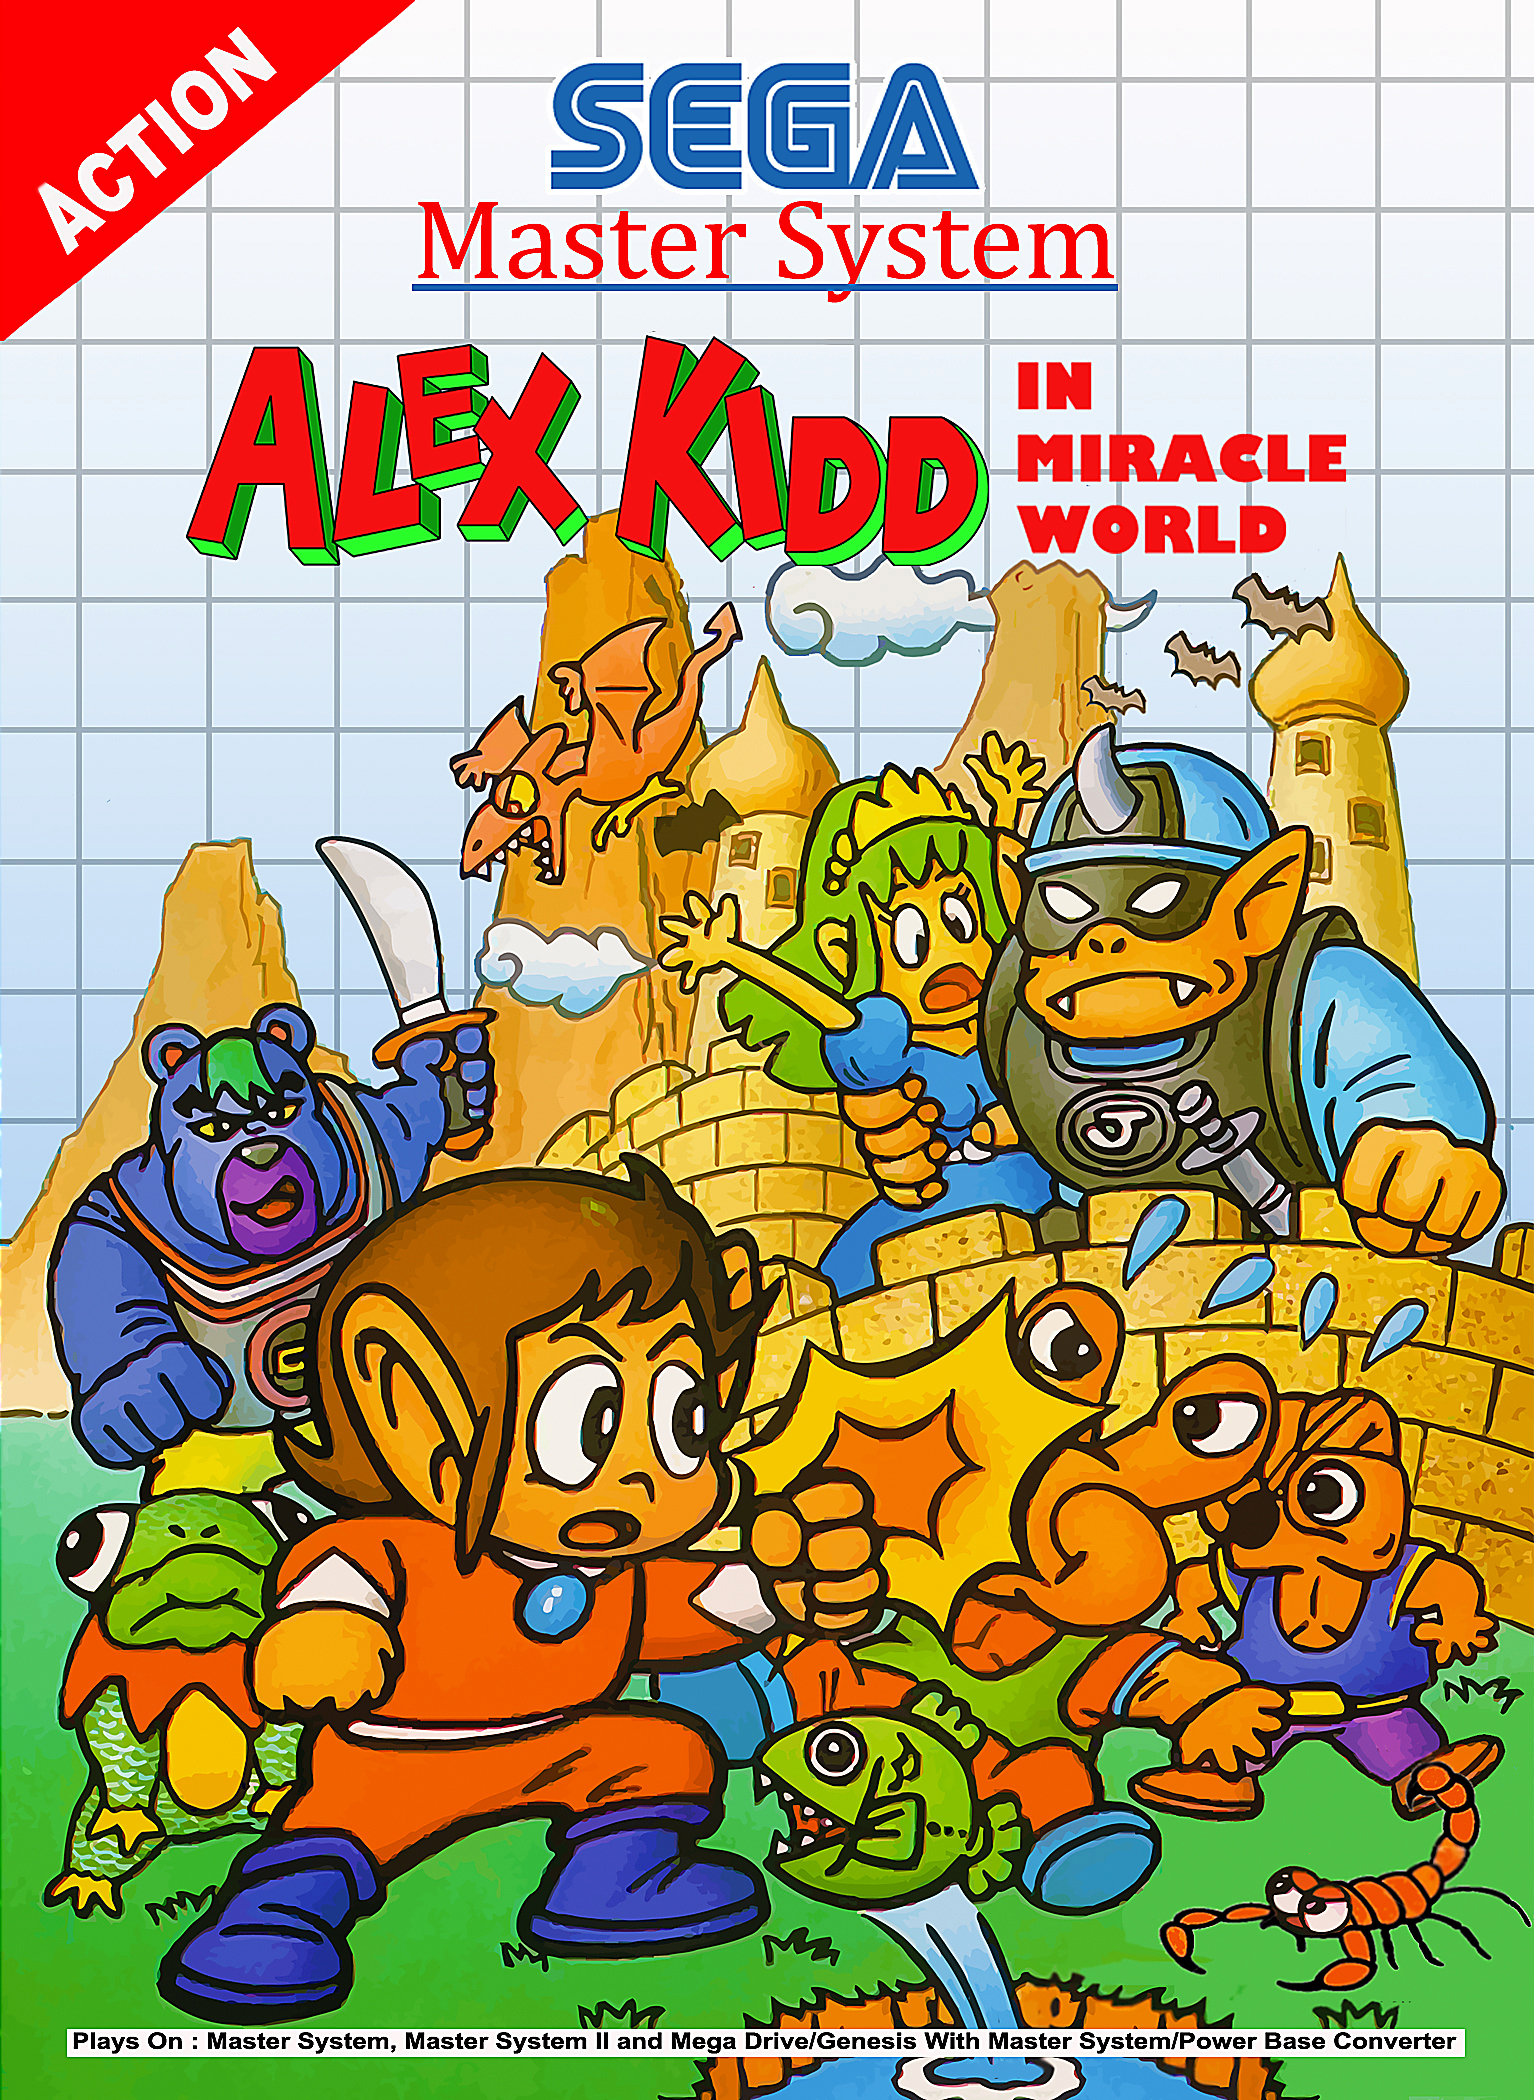 alex kidd miracle